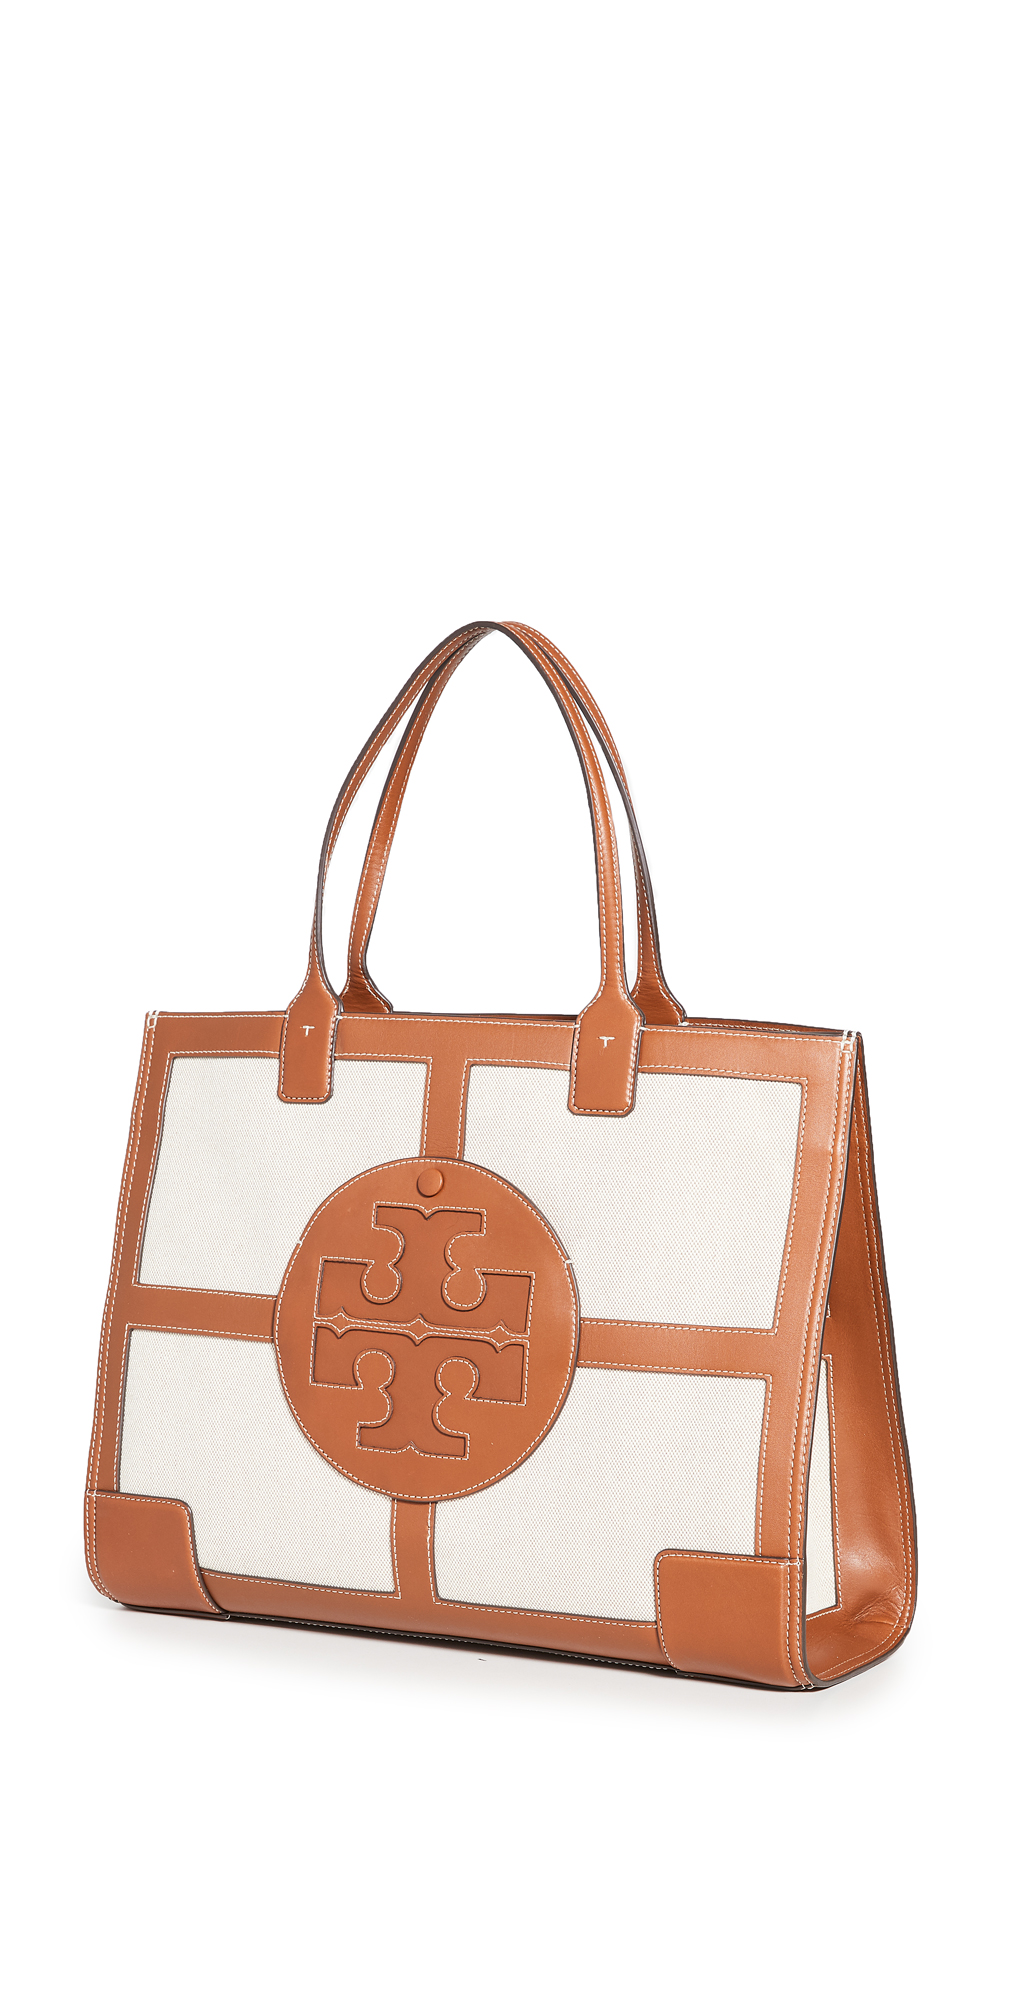 Tory Burch Elle Canvas Quadrant Tote Bag